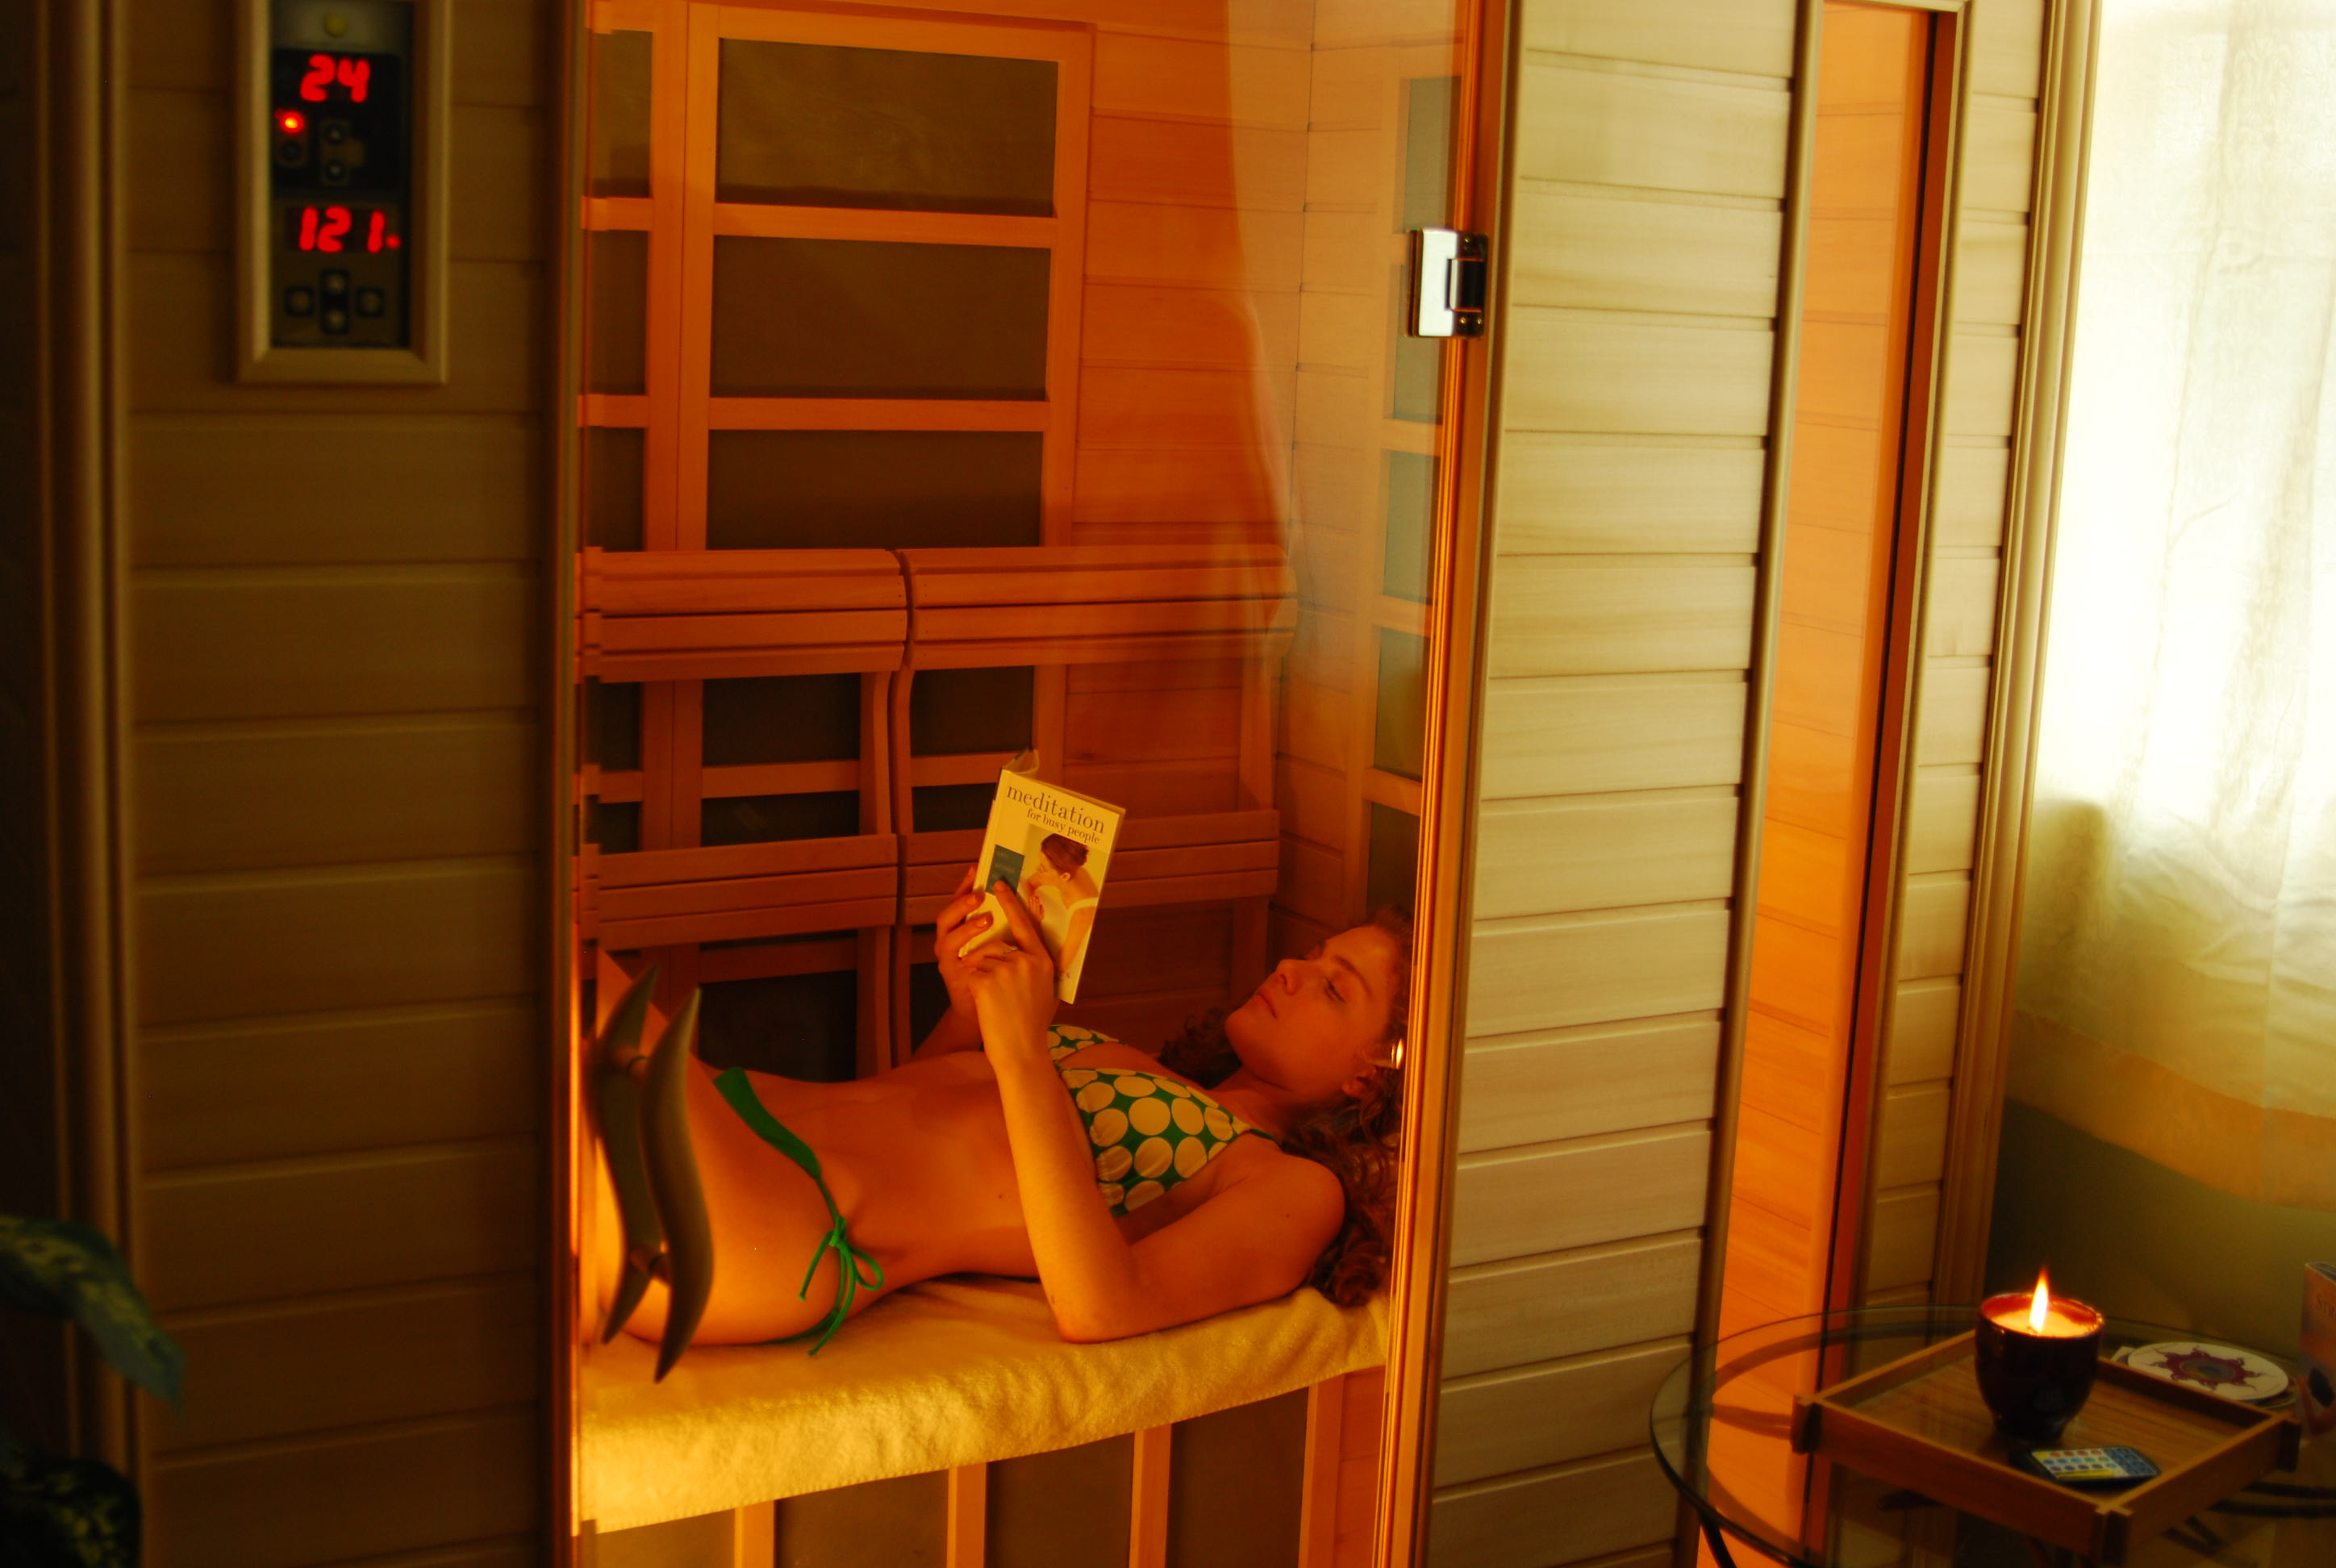 1 hour Infrared Sauna (5 session pass)